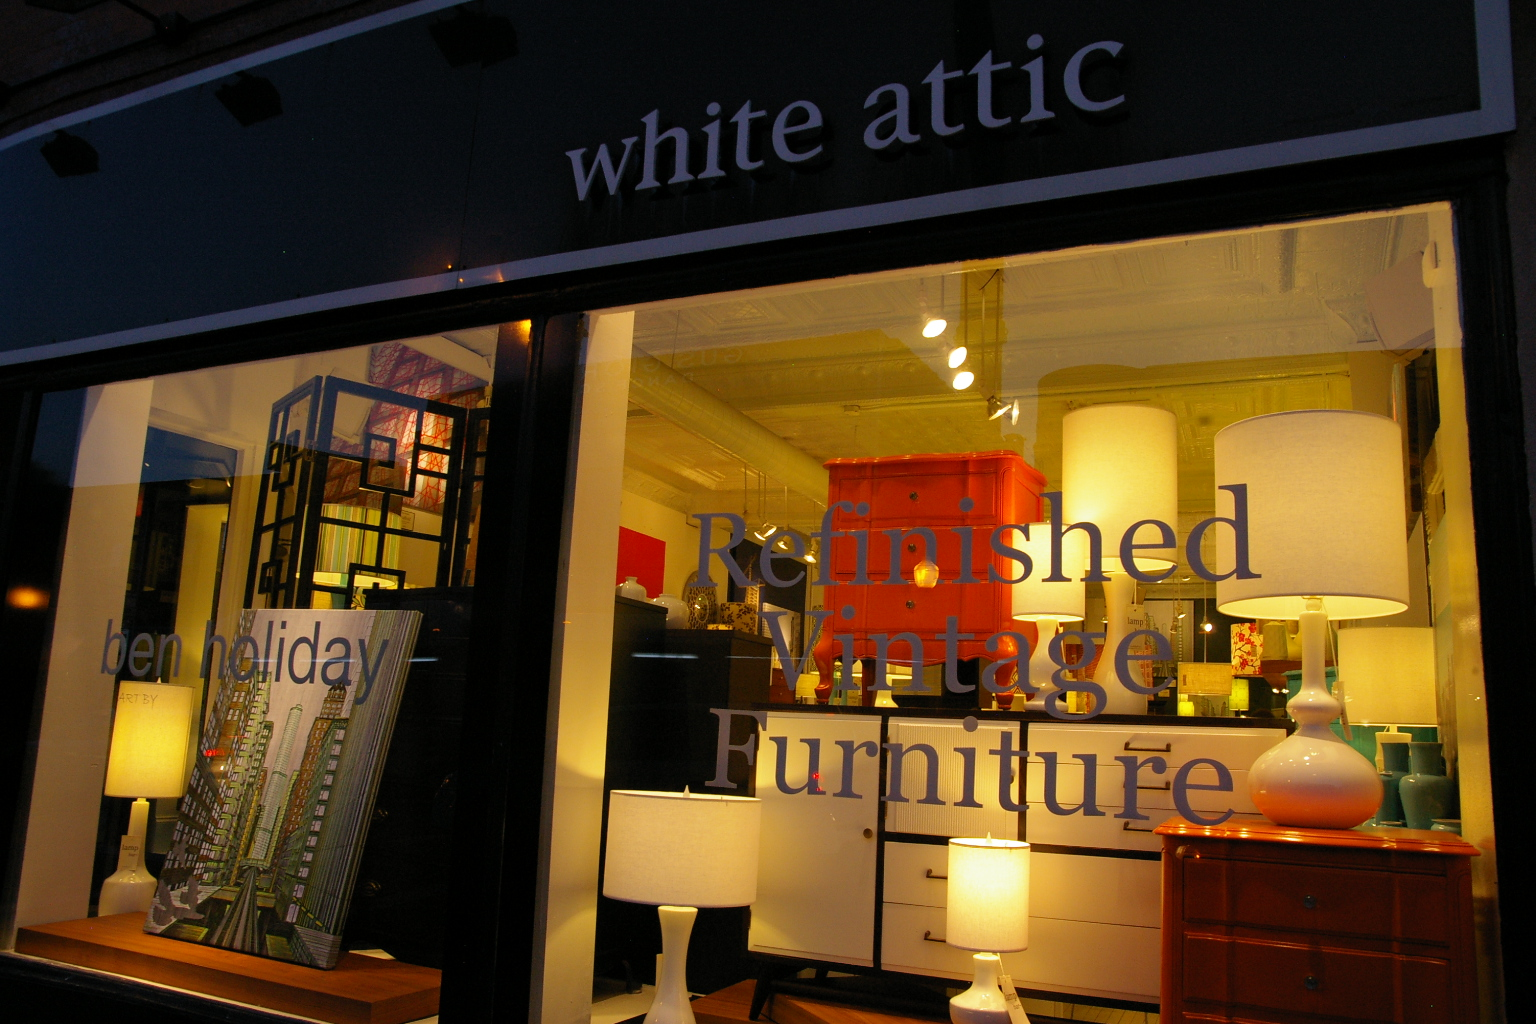 The Inside Scoop Furniture Store The White Attic In Chicago Illinois Modern Diy Art Designs